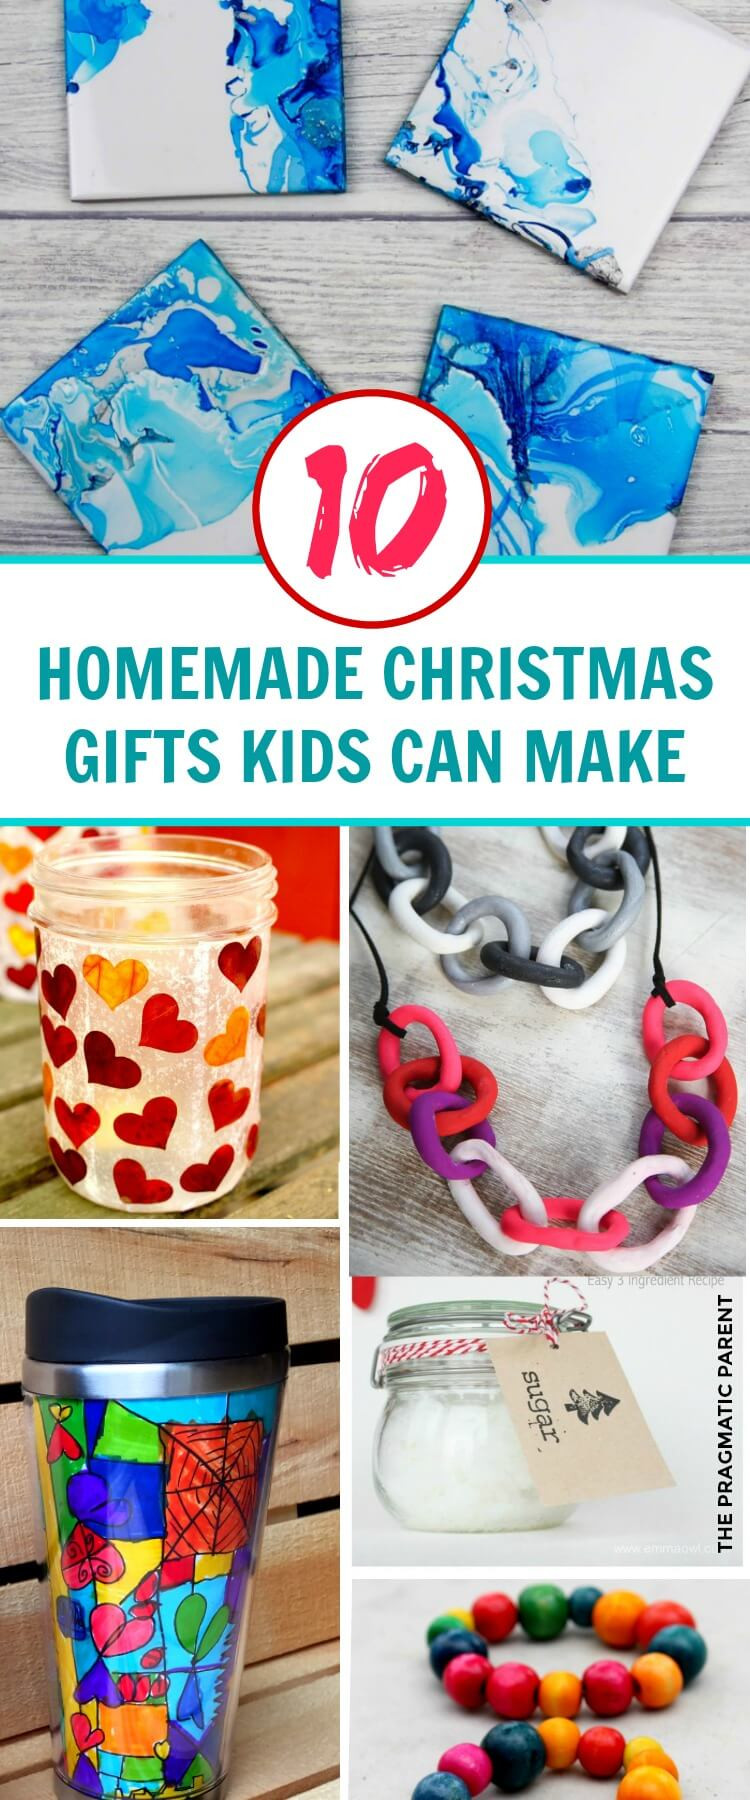 DIY Gifts For Kids To Make  10 Beautiful Homemade Christmas Gifts Kids Can Make This 2020